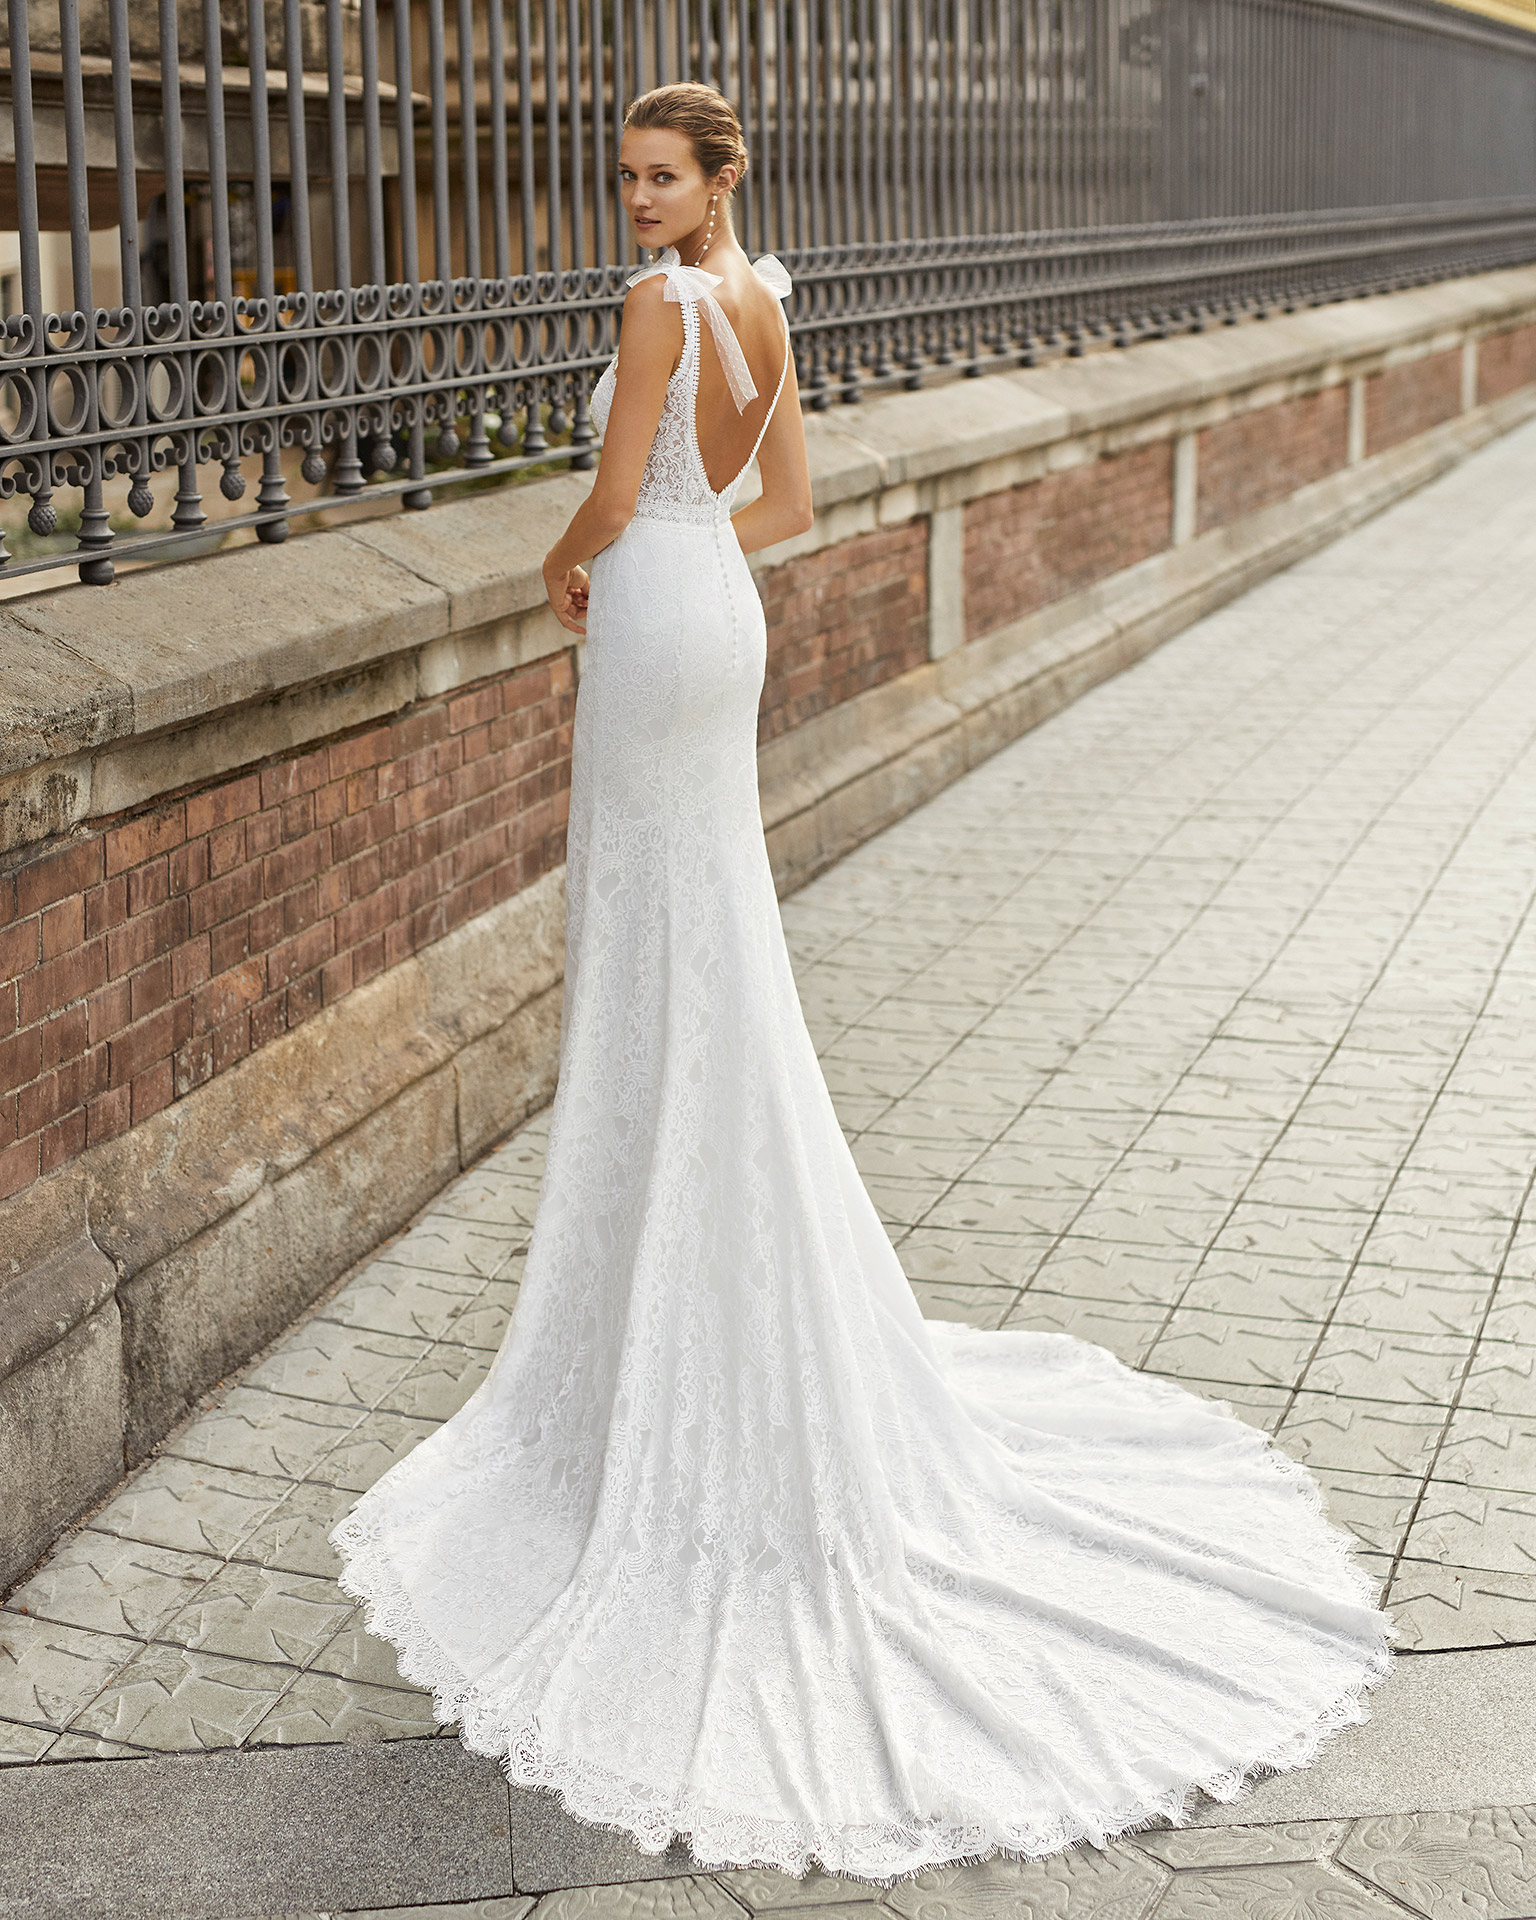 Mermaid wedding dress, beaded lace. V-neck, bows on the shoulders, low back and dot tulle bows on the shoulders. 2022  Collection.